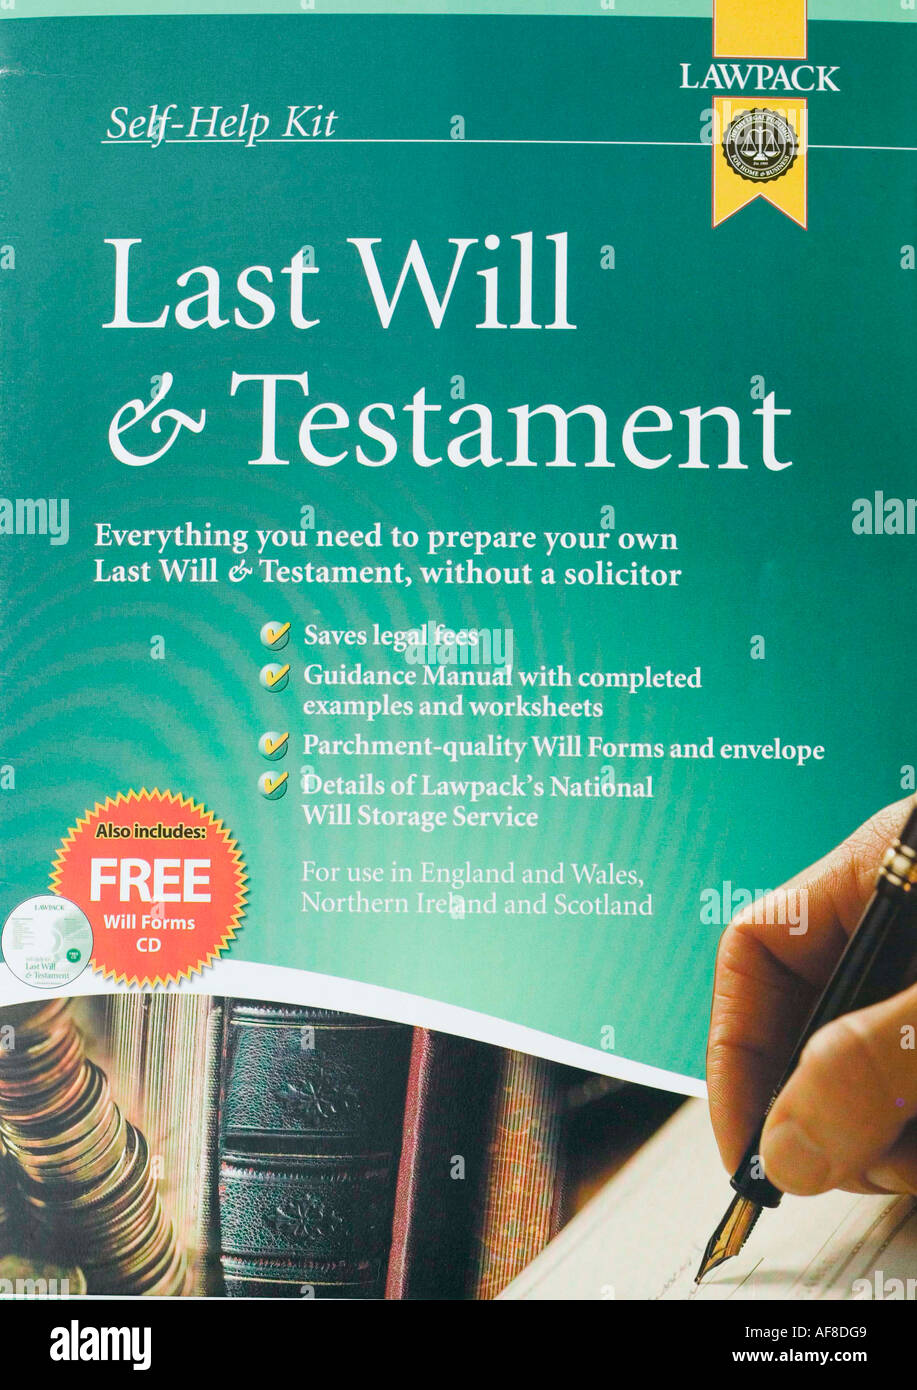 a last will and testament pack - Stock Image